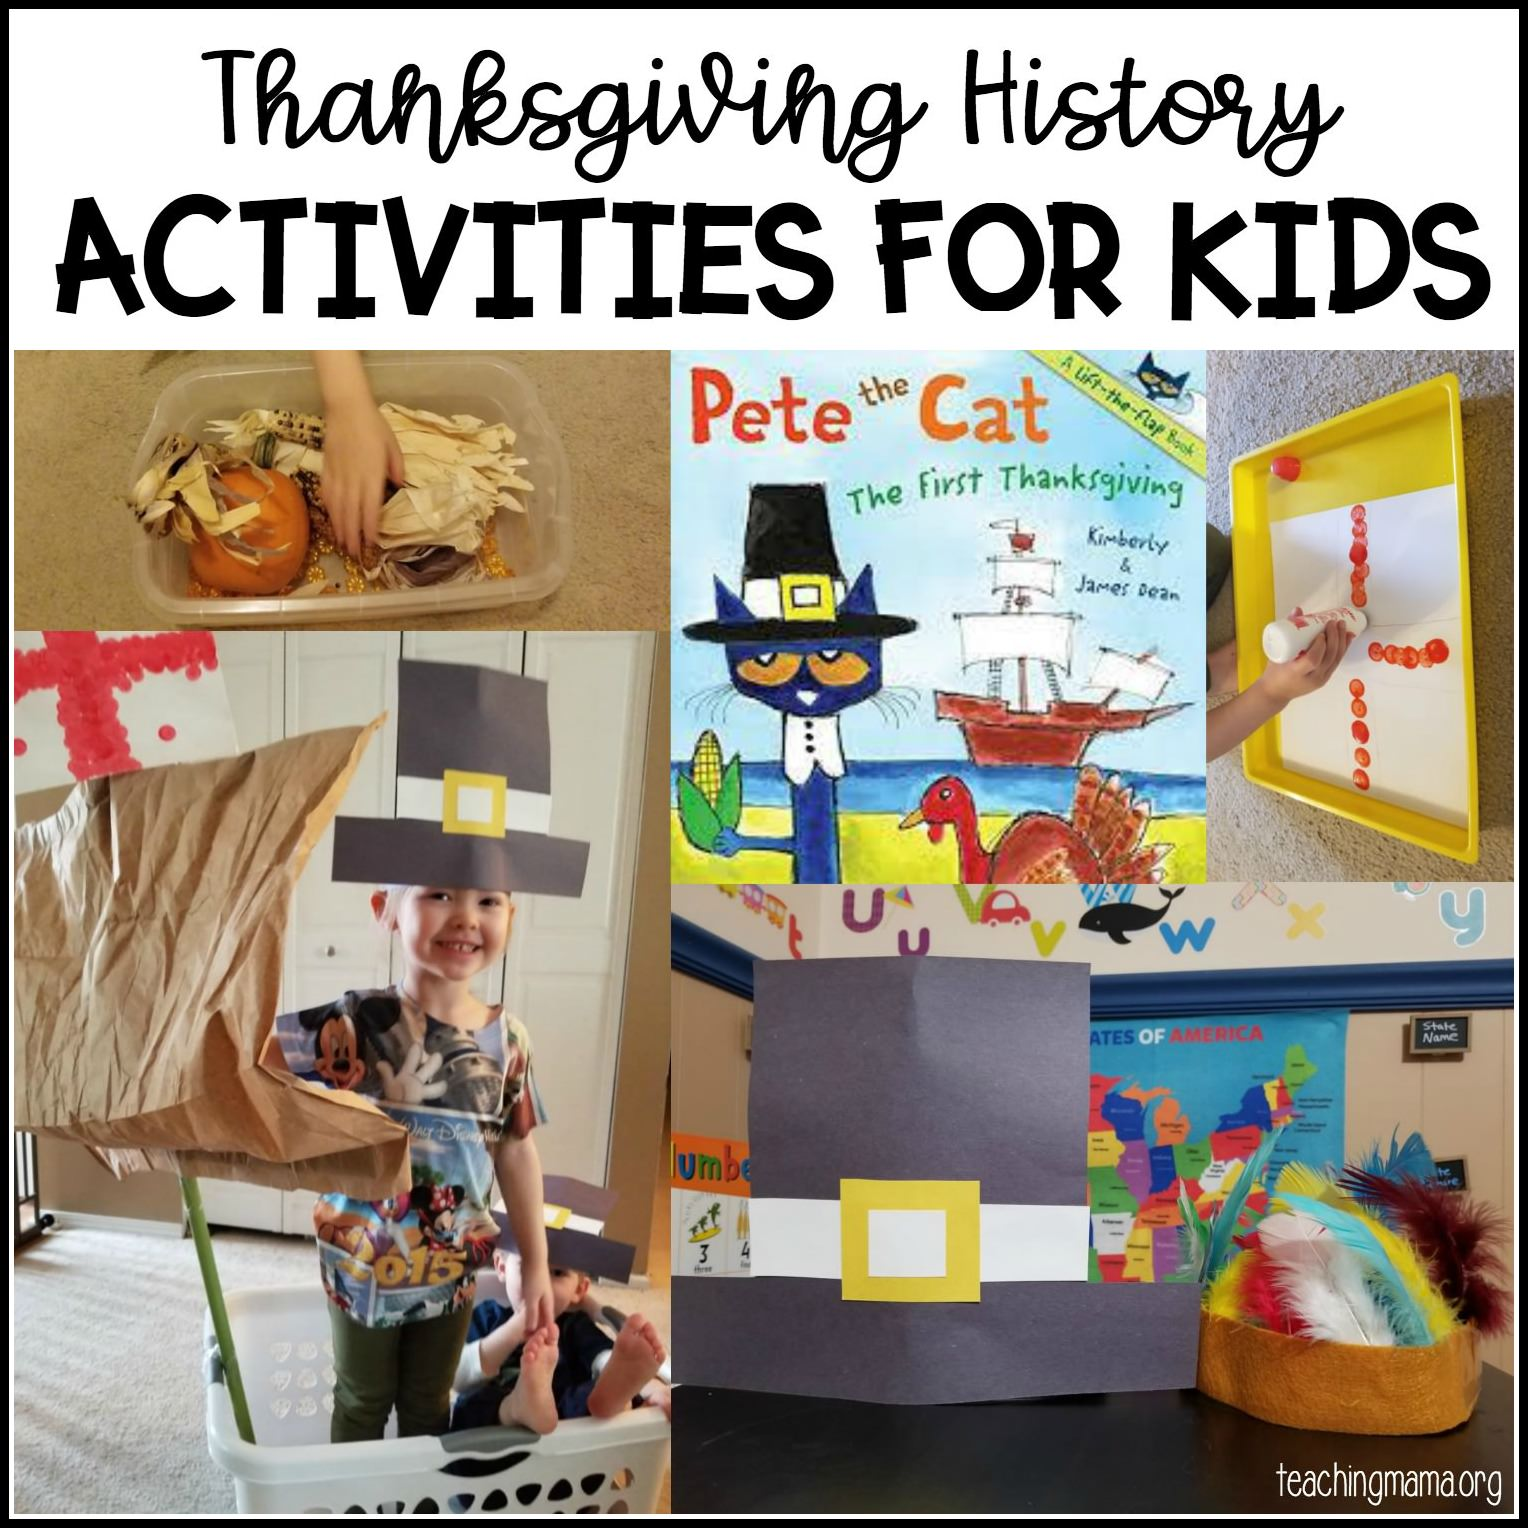 Thanksgiving history activities for kids